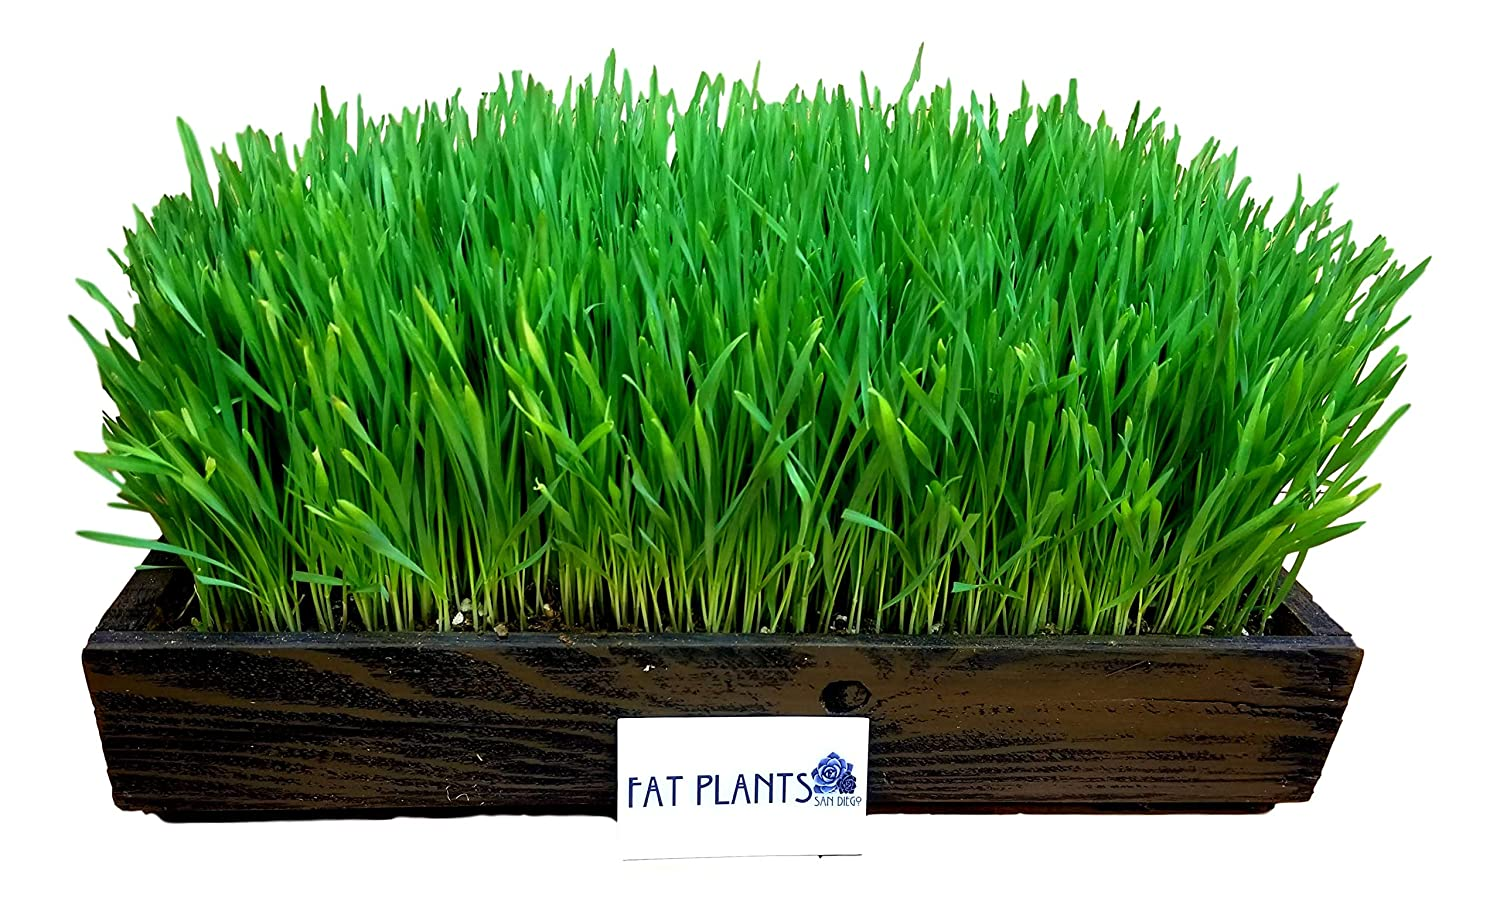 FATPLANTS Complete Organic Wheatgrass Kit in Cedar Planter, Organic Soil, Seeds and Instructions Large, Wicker Brown